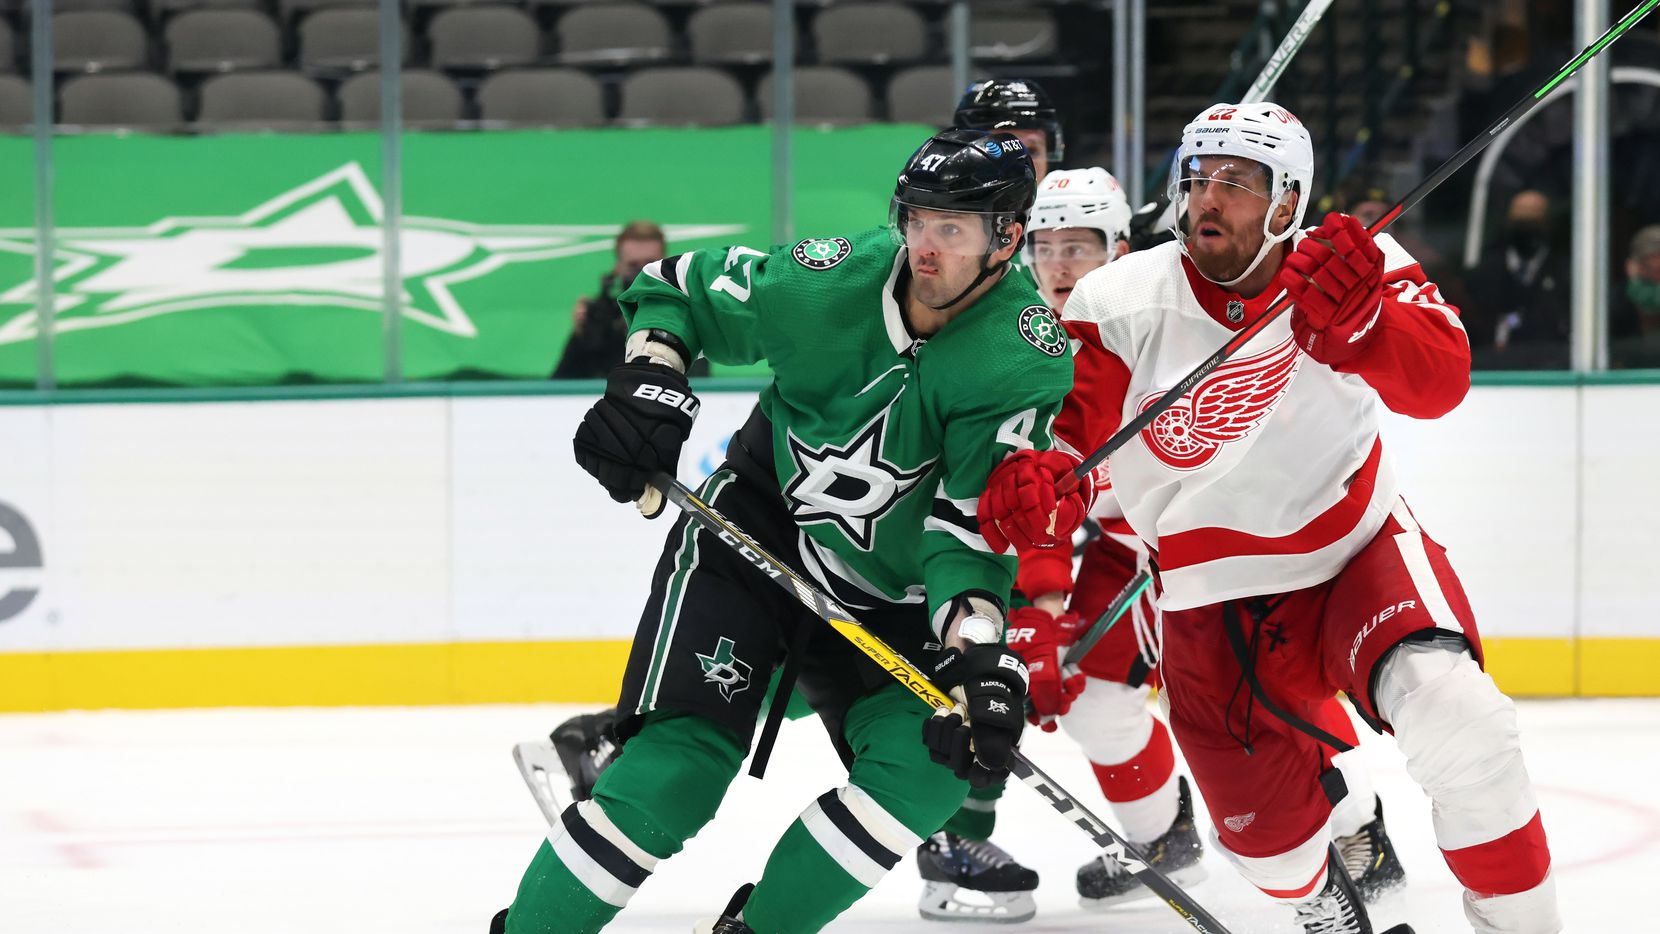 Dallas Stars right wing Alexander Radulov (47) and Detroit Red Wings defenseman Patrik Nemeth (22) fight for position during the third period of play at American Airlines Center on Tuesday, January 26, 2021 in Dallas.